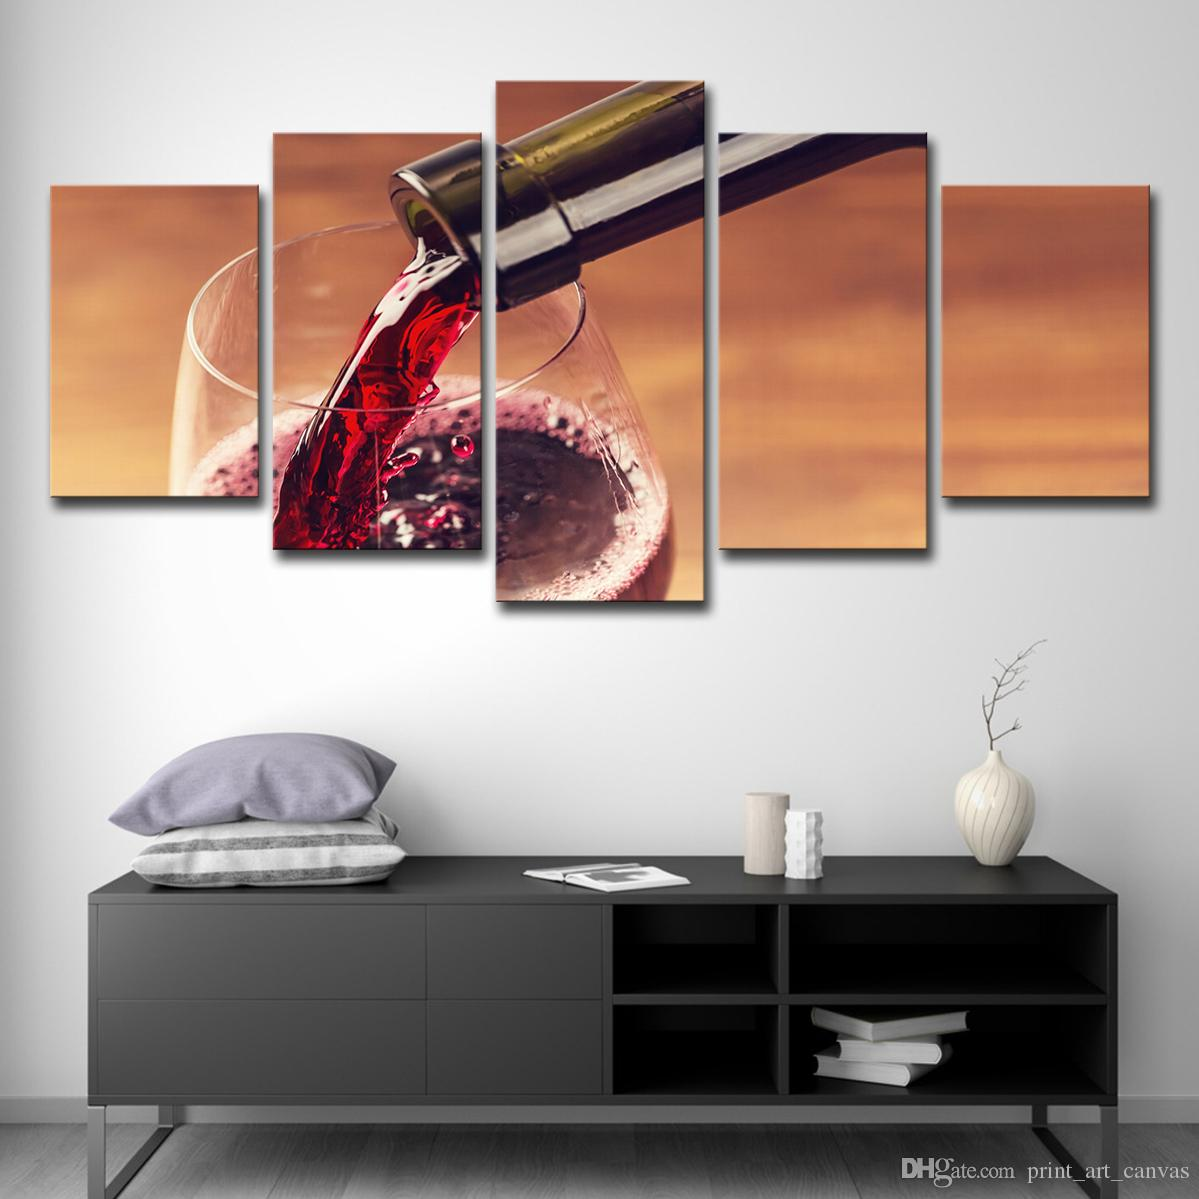 Canvas Painting Home Decor For Living Room HD Prints 5 Pieces Red Wine Glass Pictures Drink Poster Restaurant Wall Art